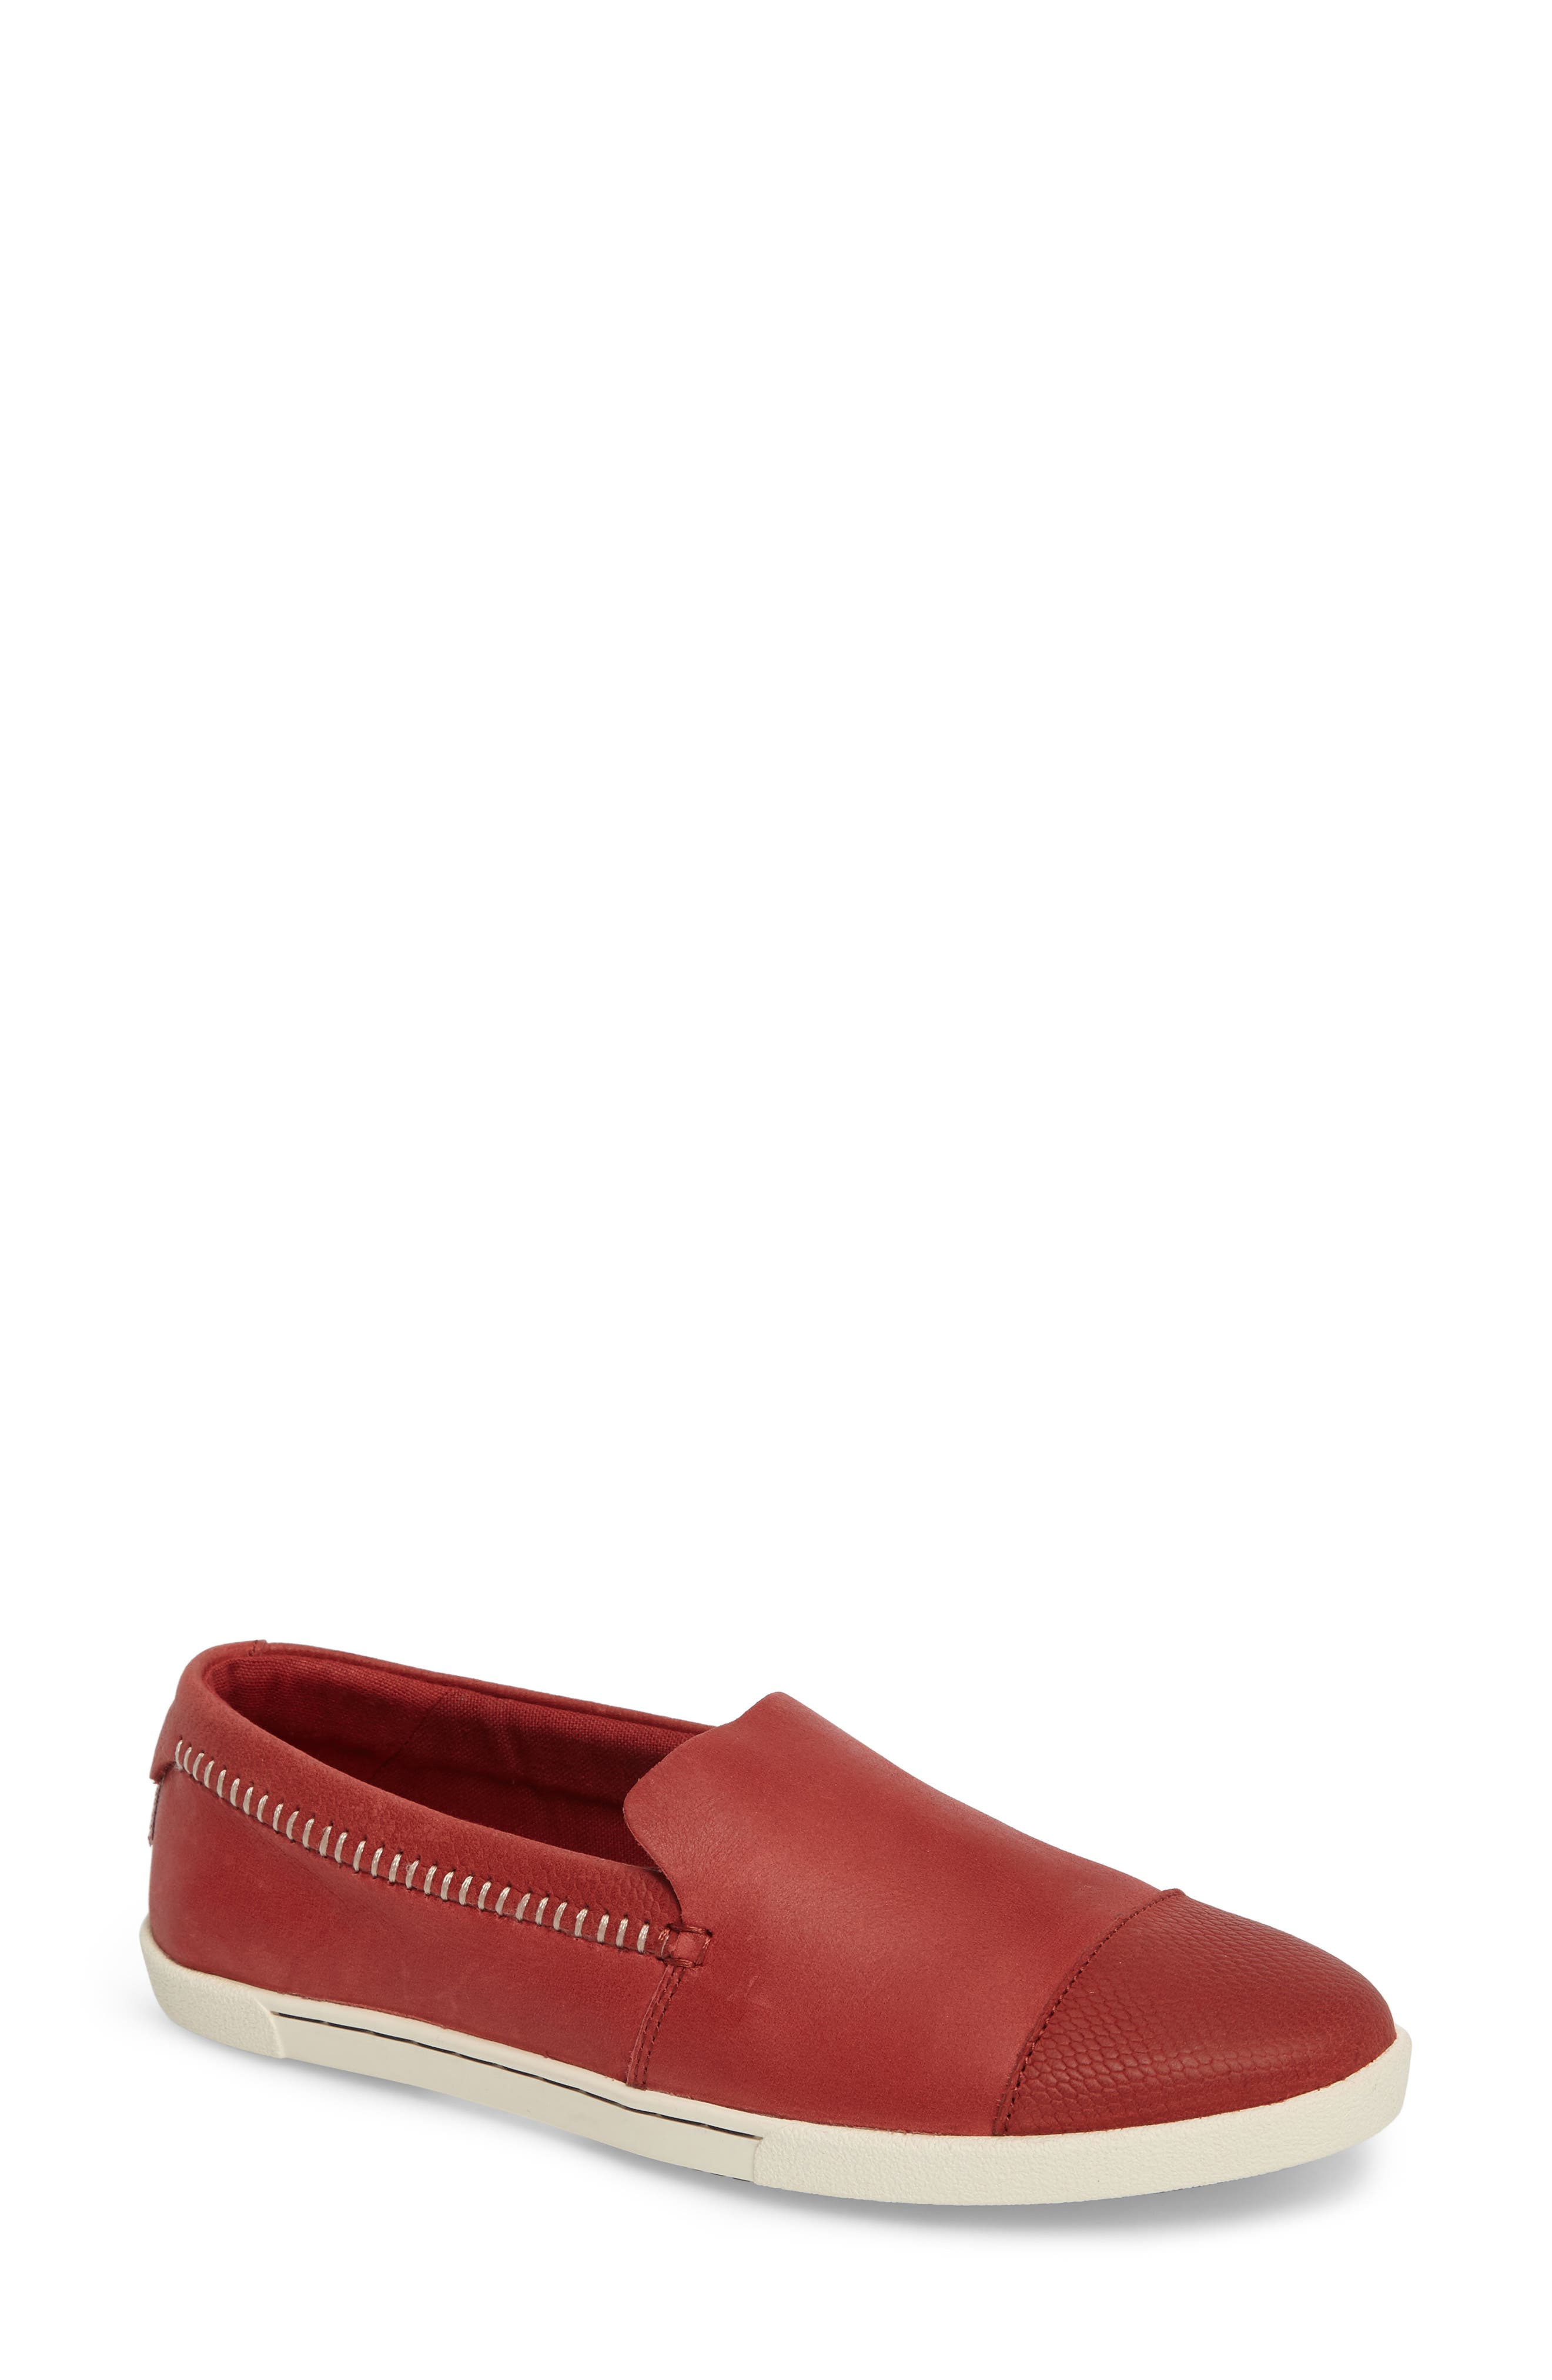 Alohi Embossed Cap Toe Slip-On,                             Main thumbnail 1, color,                             Red Mud/ Red Mud Leather